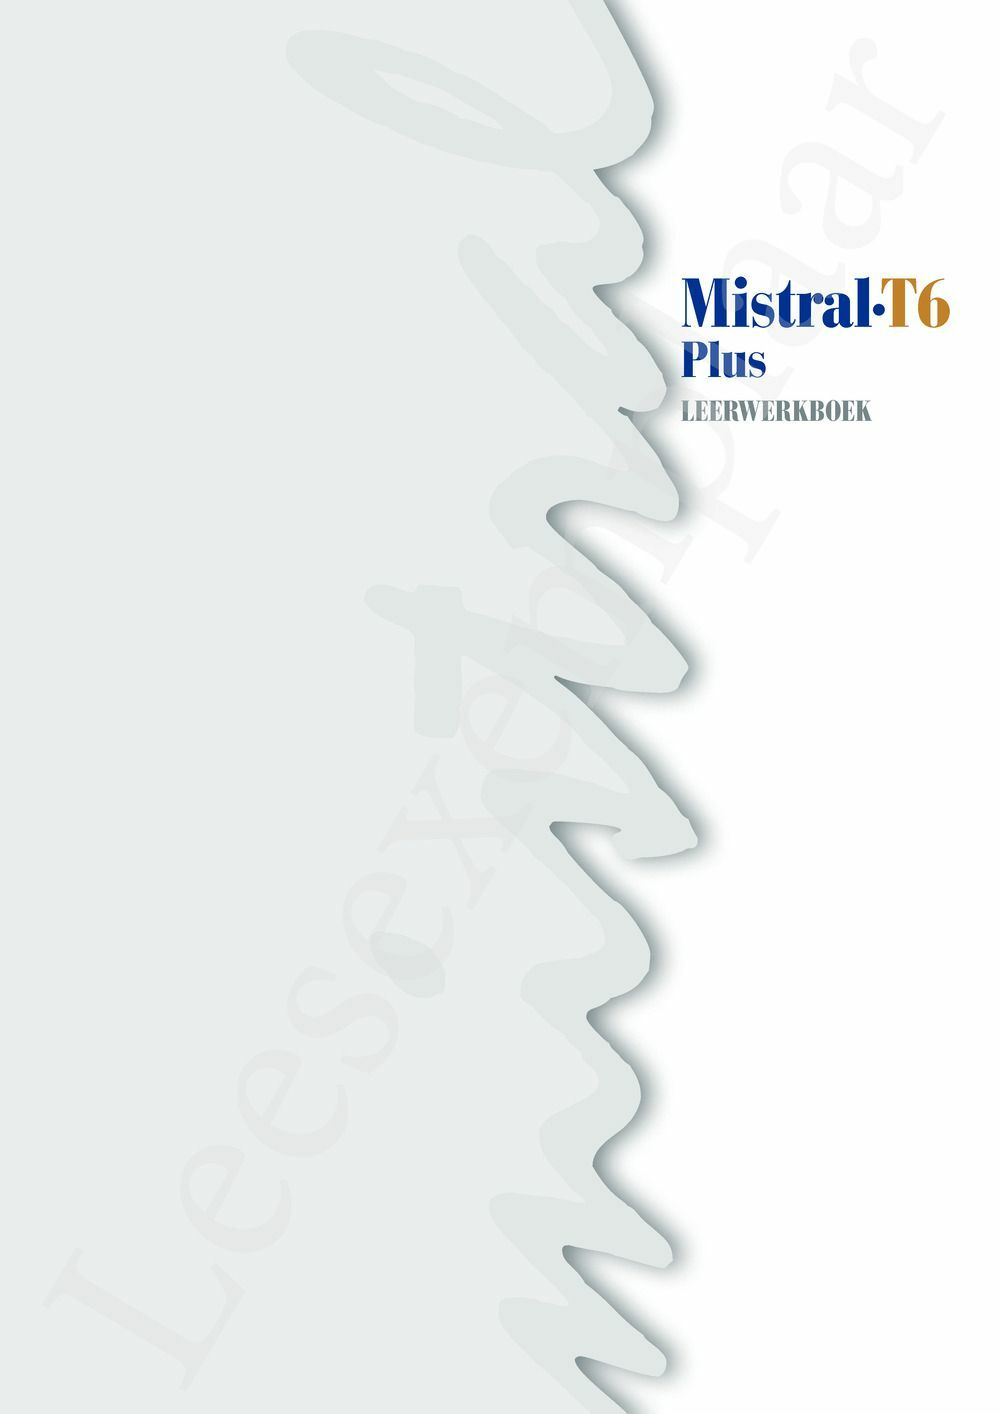 Preview: Mistral T6 Plus Leerwerkboek